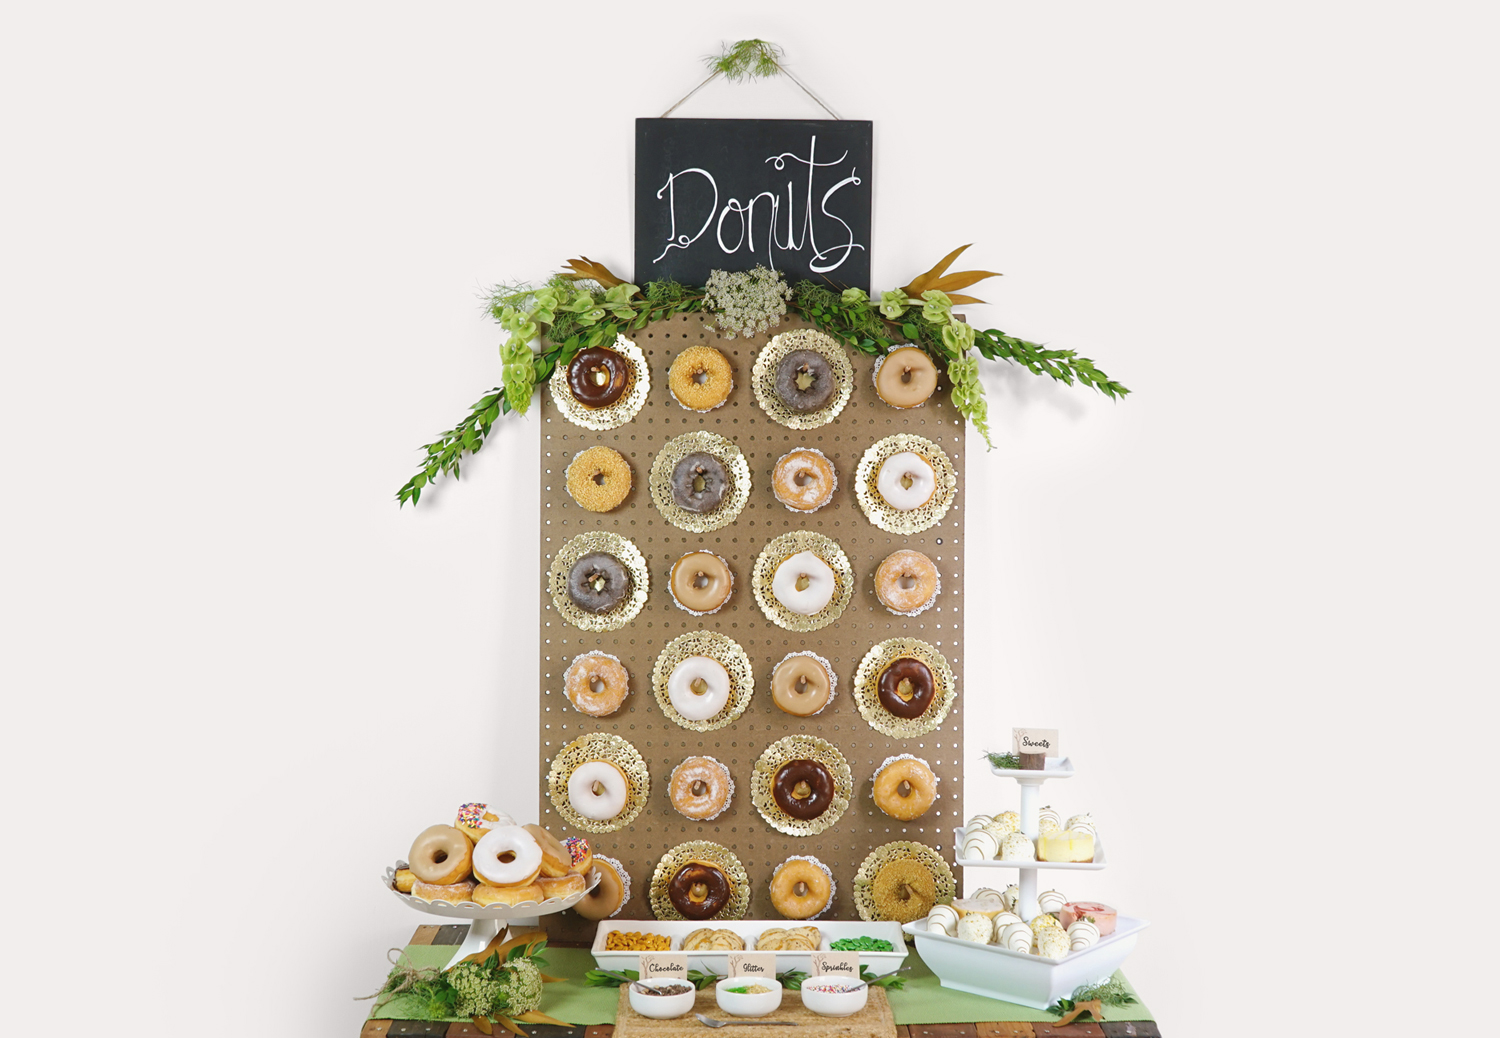 DIY Tutorial: Rustic DIY Donut Wall